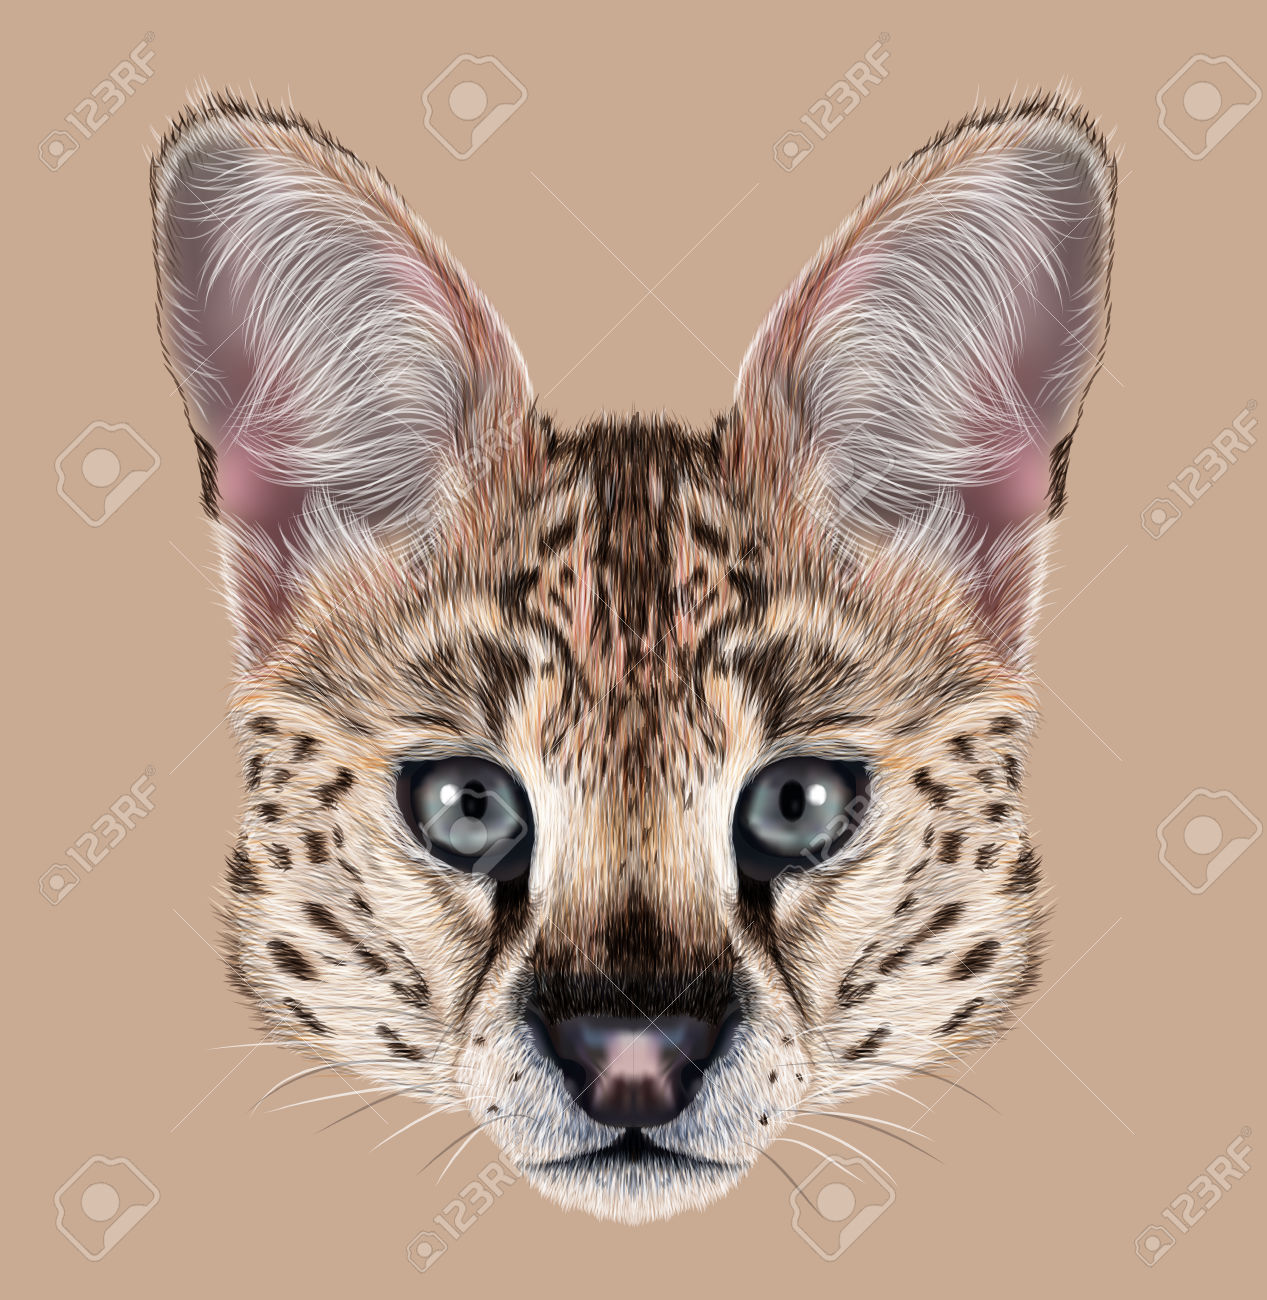 Serval clipart #2, Download drawings